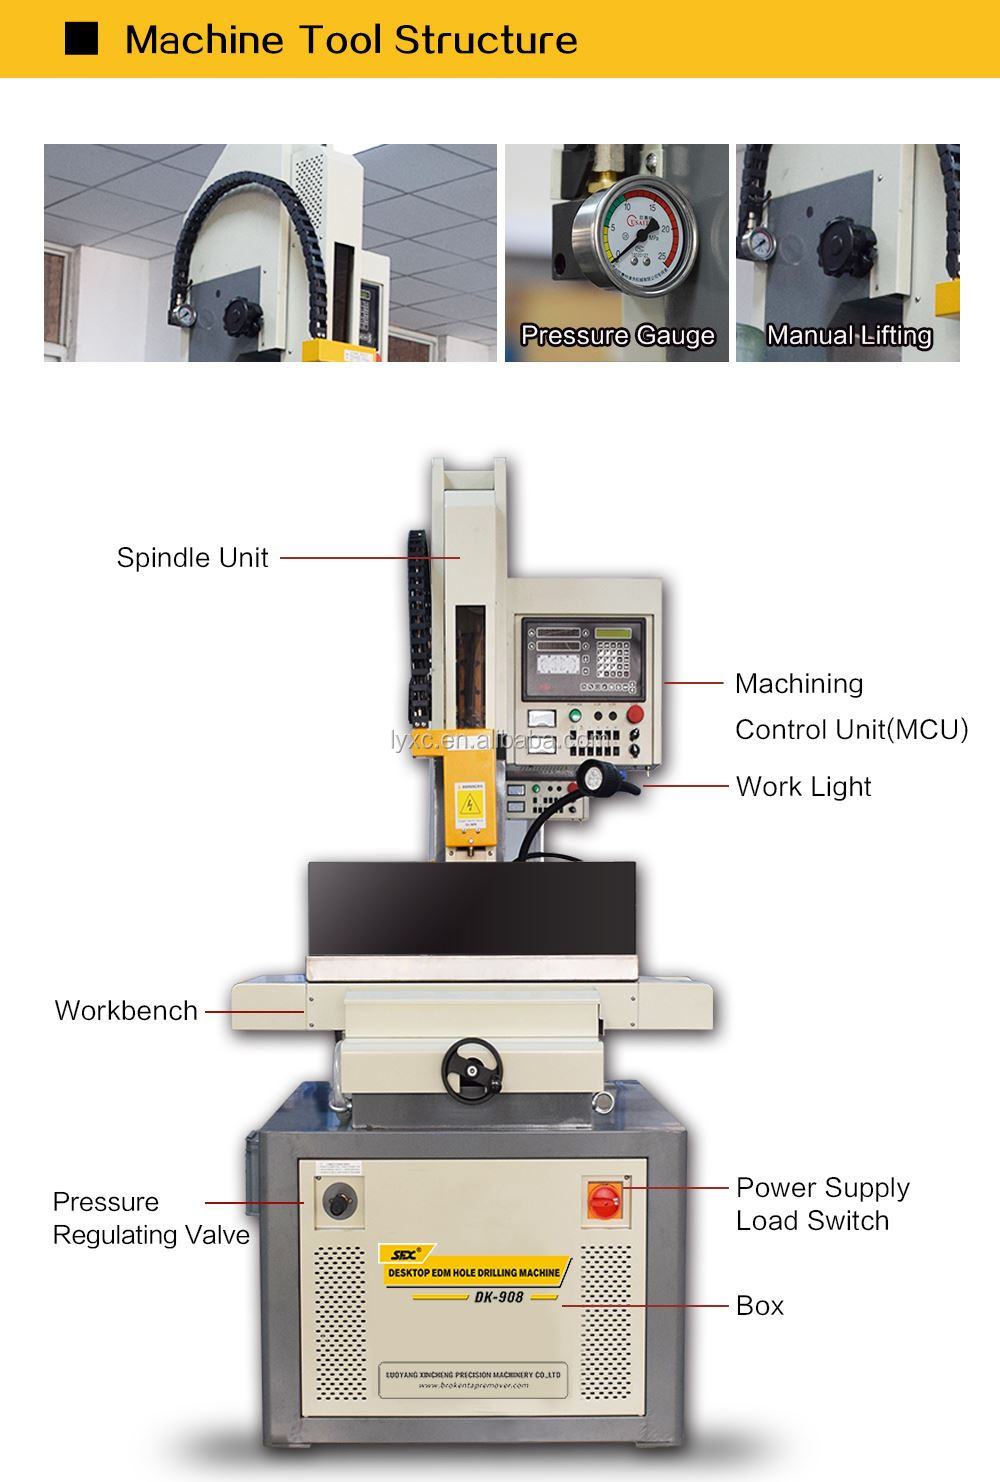 DK-806 DK703 EDM Drilling Machine Small Hole Bench Drilling Machine For 3.0MM Hole